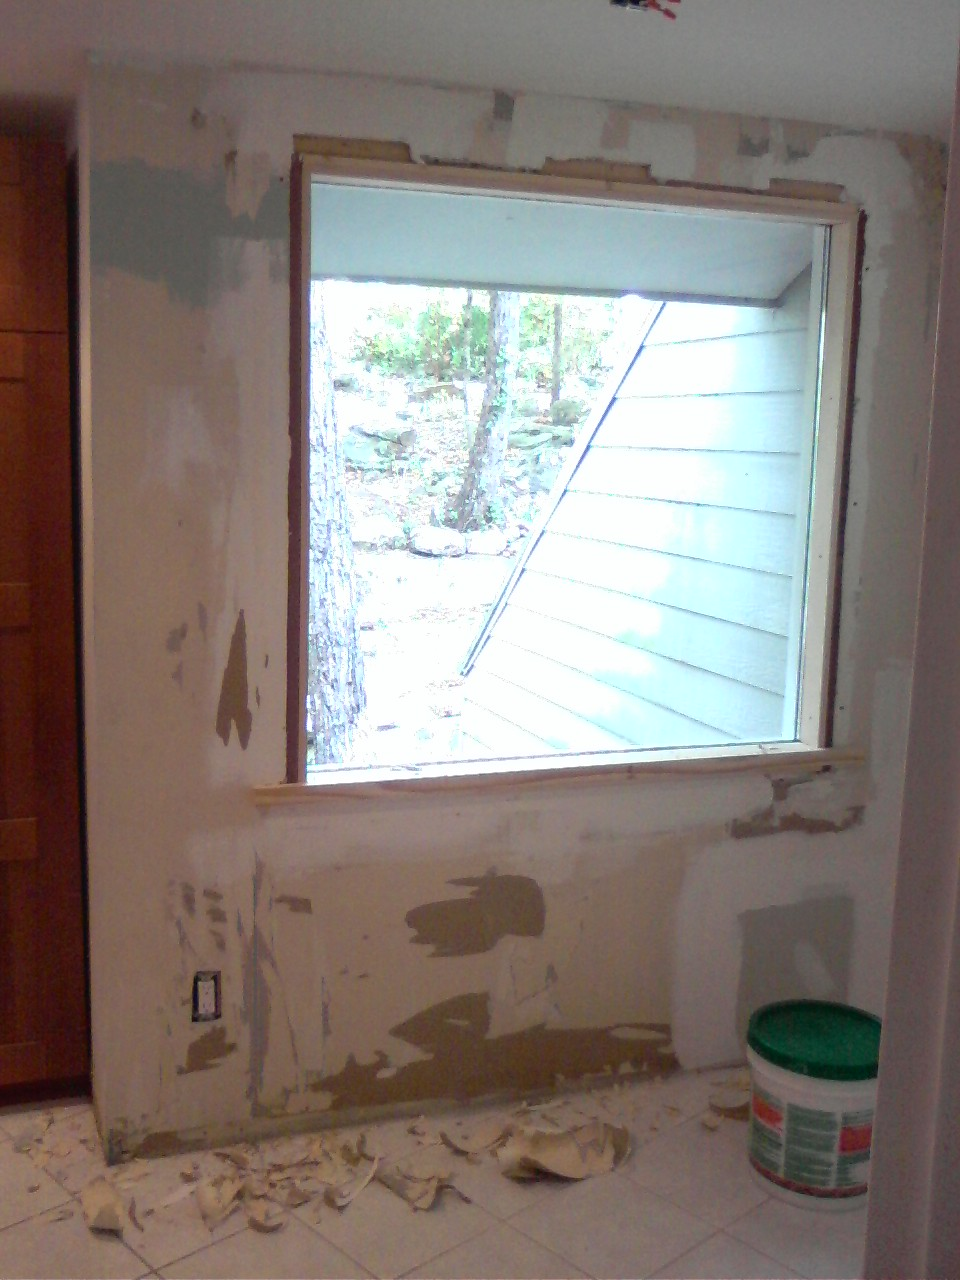 The Birmingham Handyman Drywall Repair Around Window